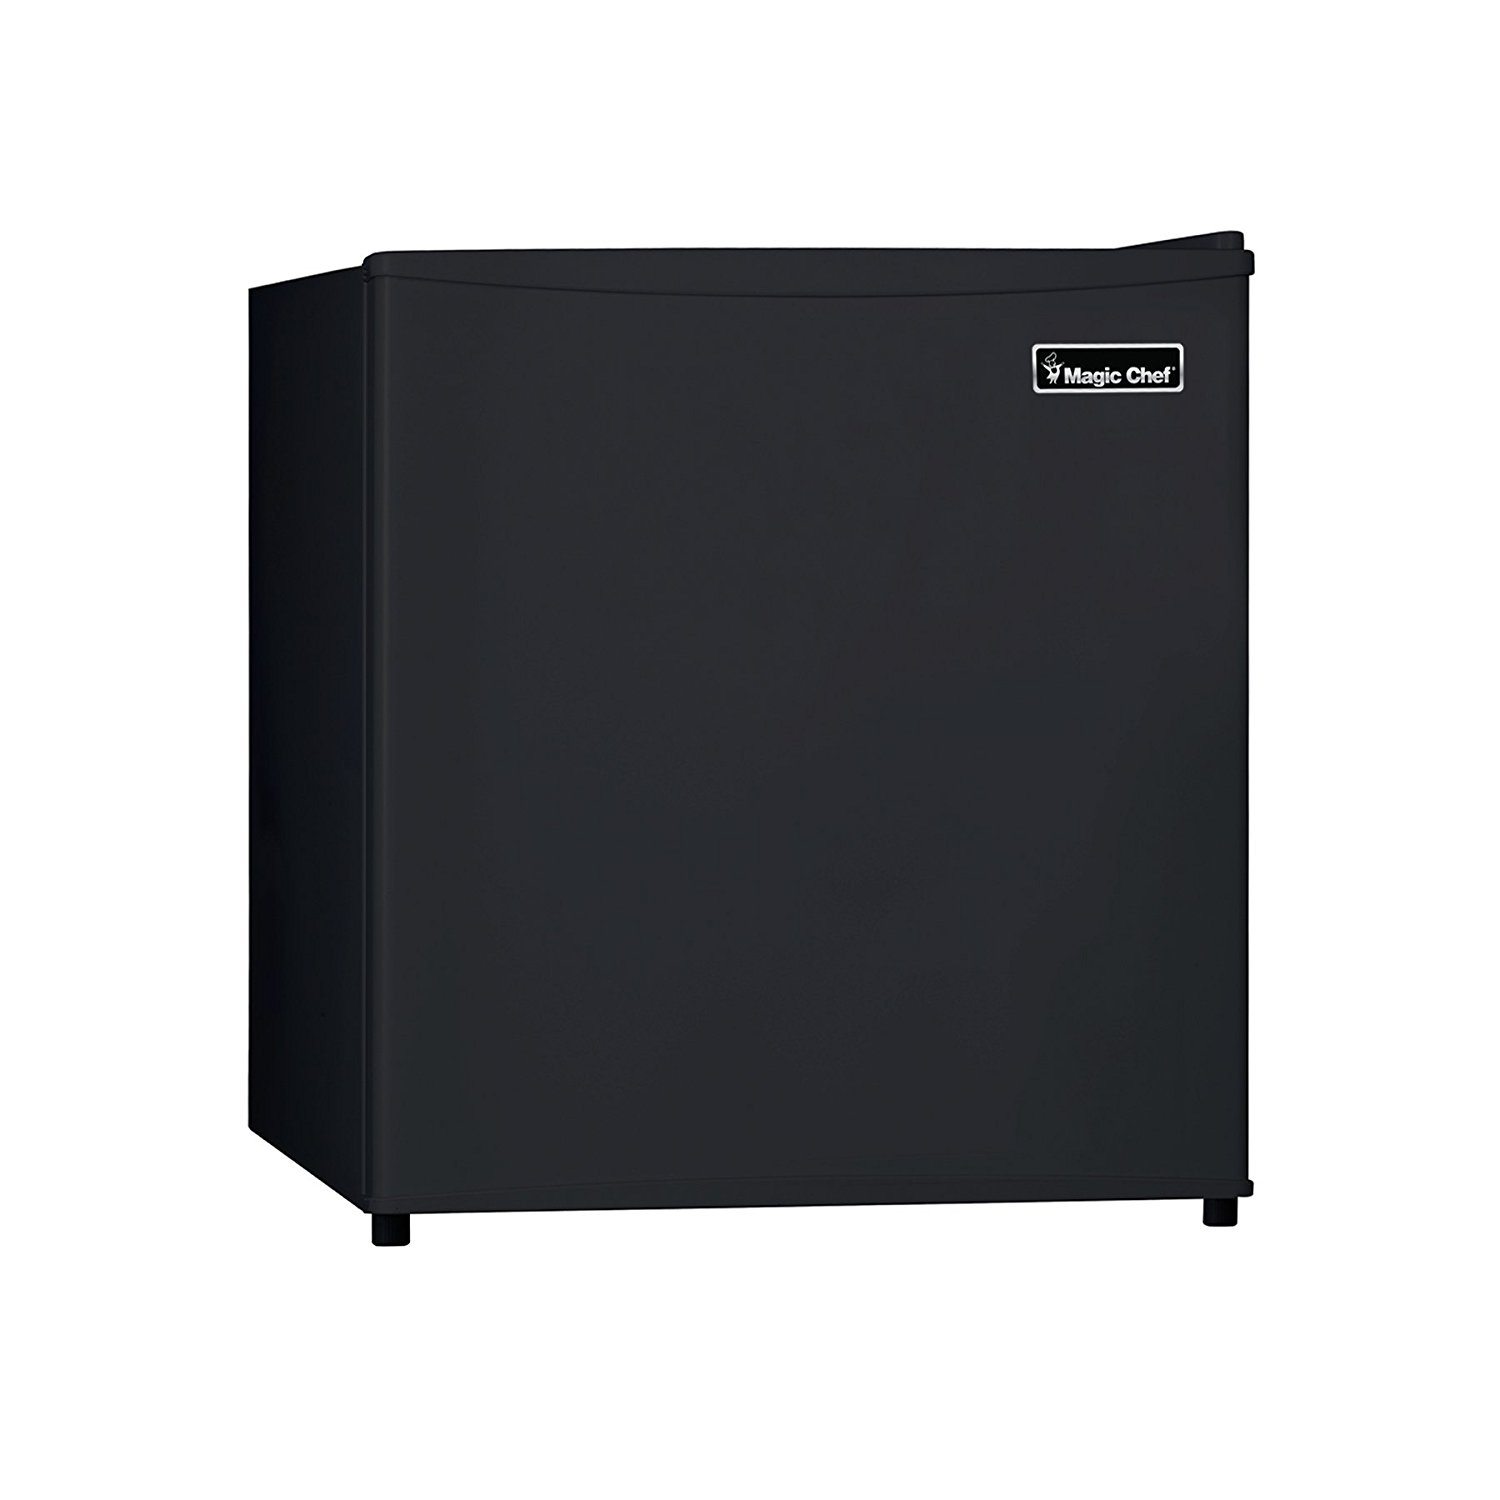 Magic Chef MCBR160B2 Refrigerator, 1.6 cu. ft., Black